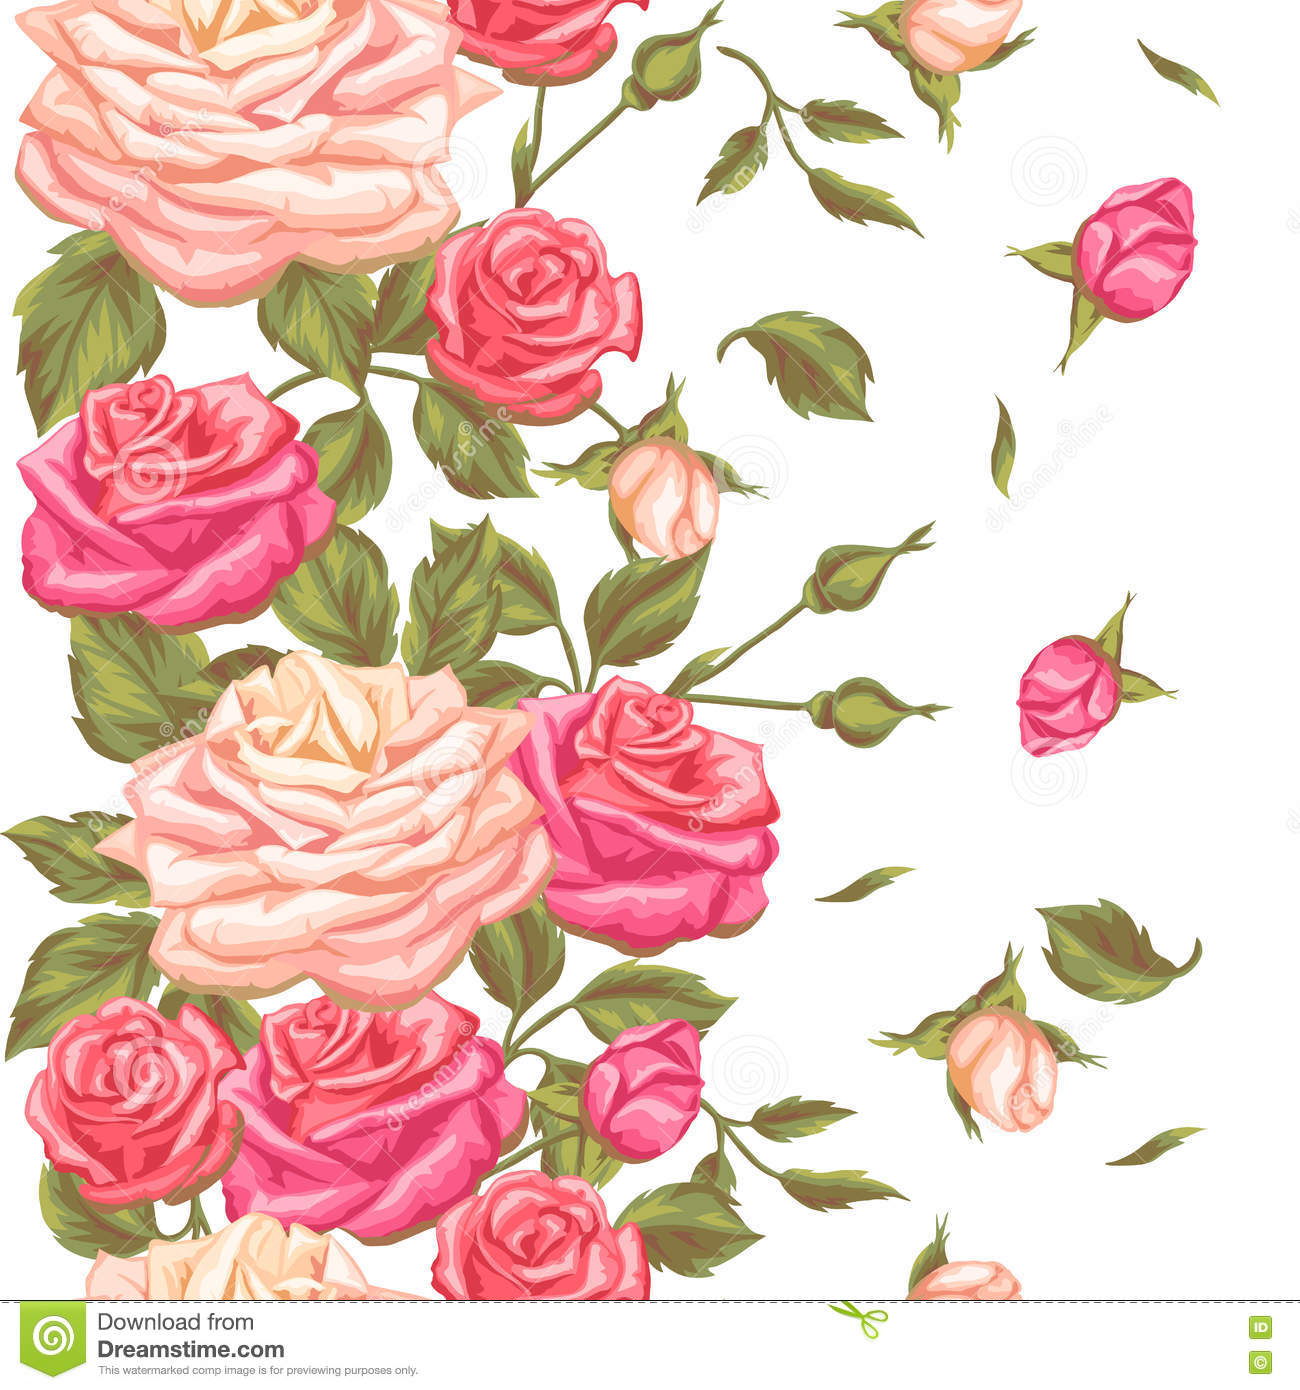 Seamless pattern with vintage roses decorative retro flowers easy seamless pattern with vintage roses decorative retro flowers easy to use for backdrop textile wrapping paper wallpaper mightylinksfo